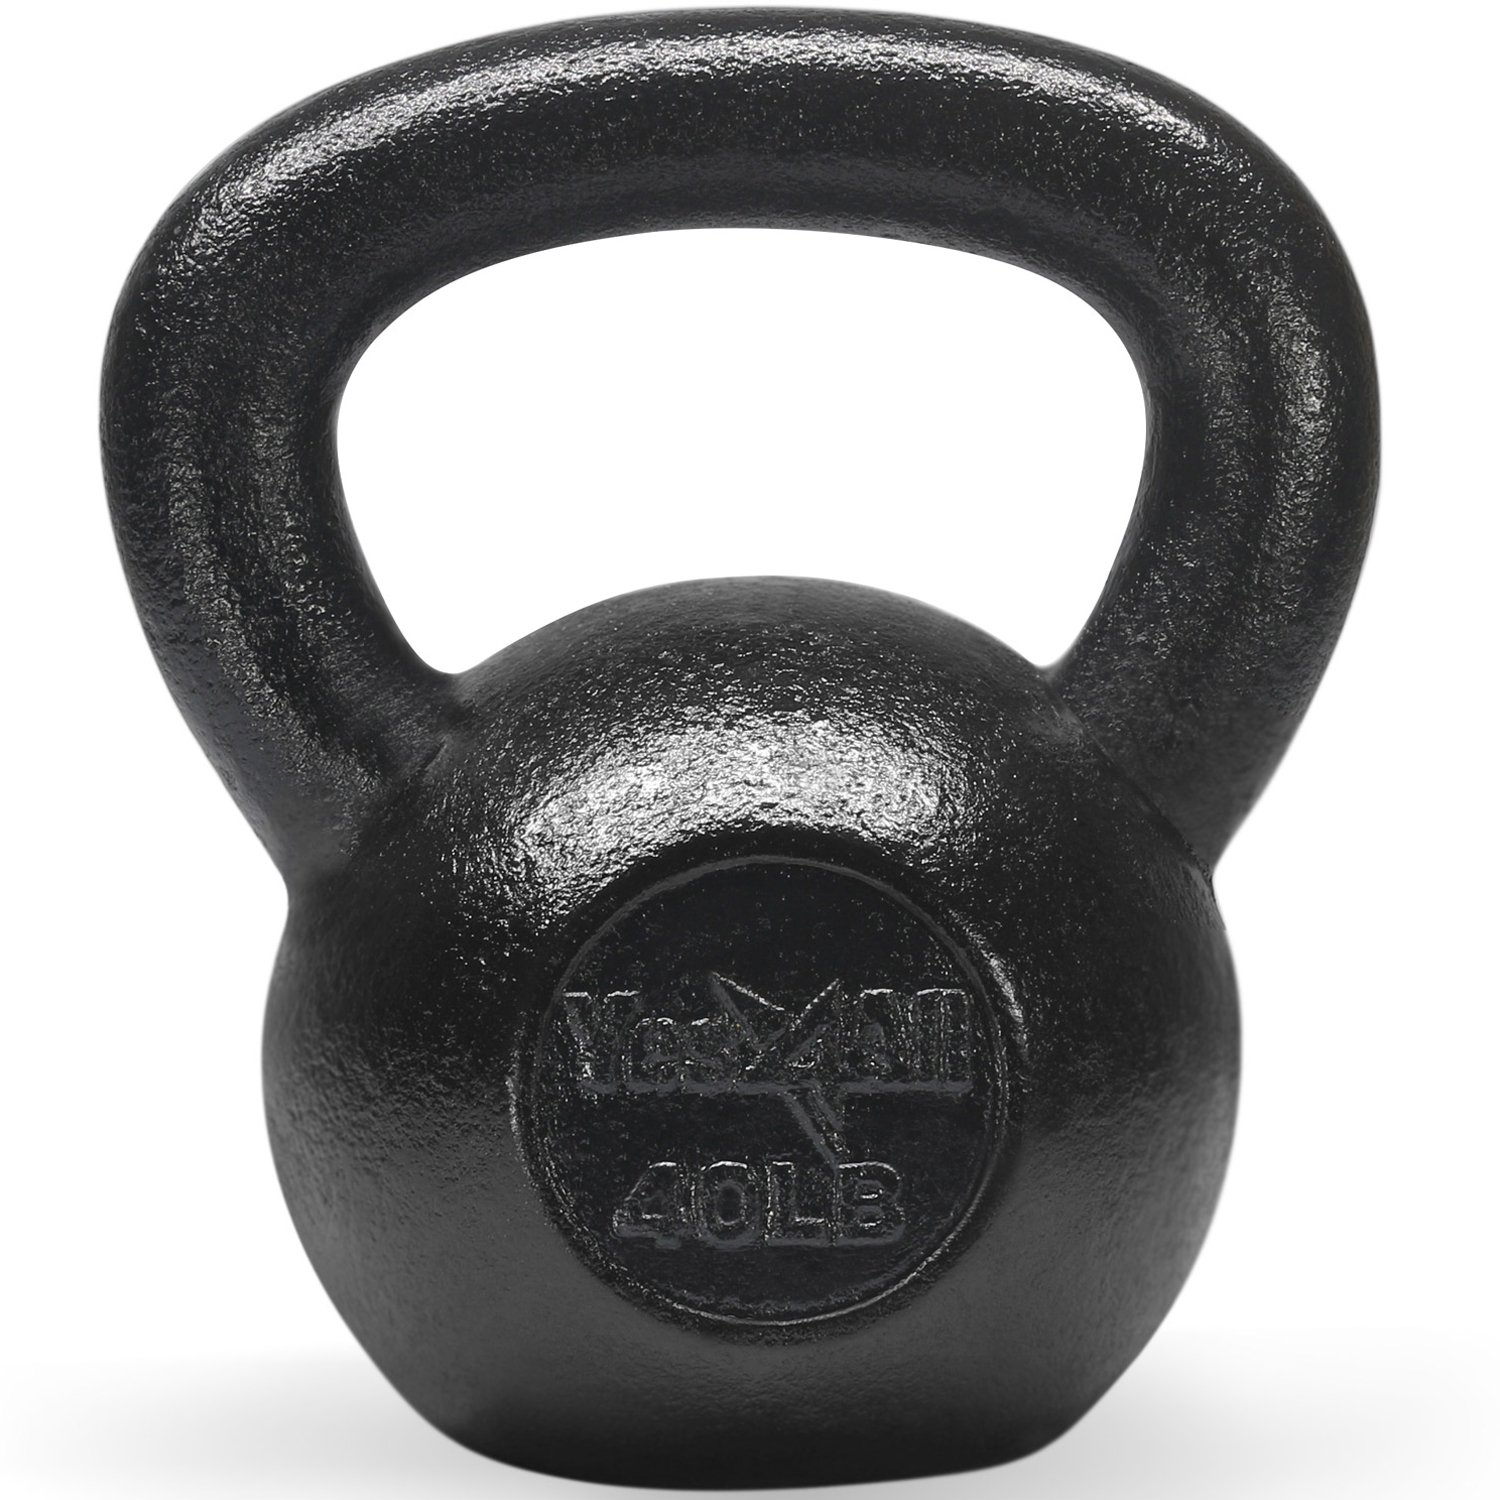 Yes4All Solid Cast Iron Kettlebells – Weight Available: 5, 10, 15, 20, 25 to 80 lbs (K - Black 40lb)